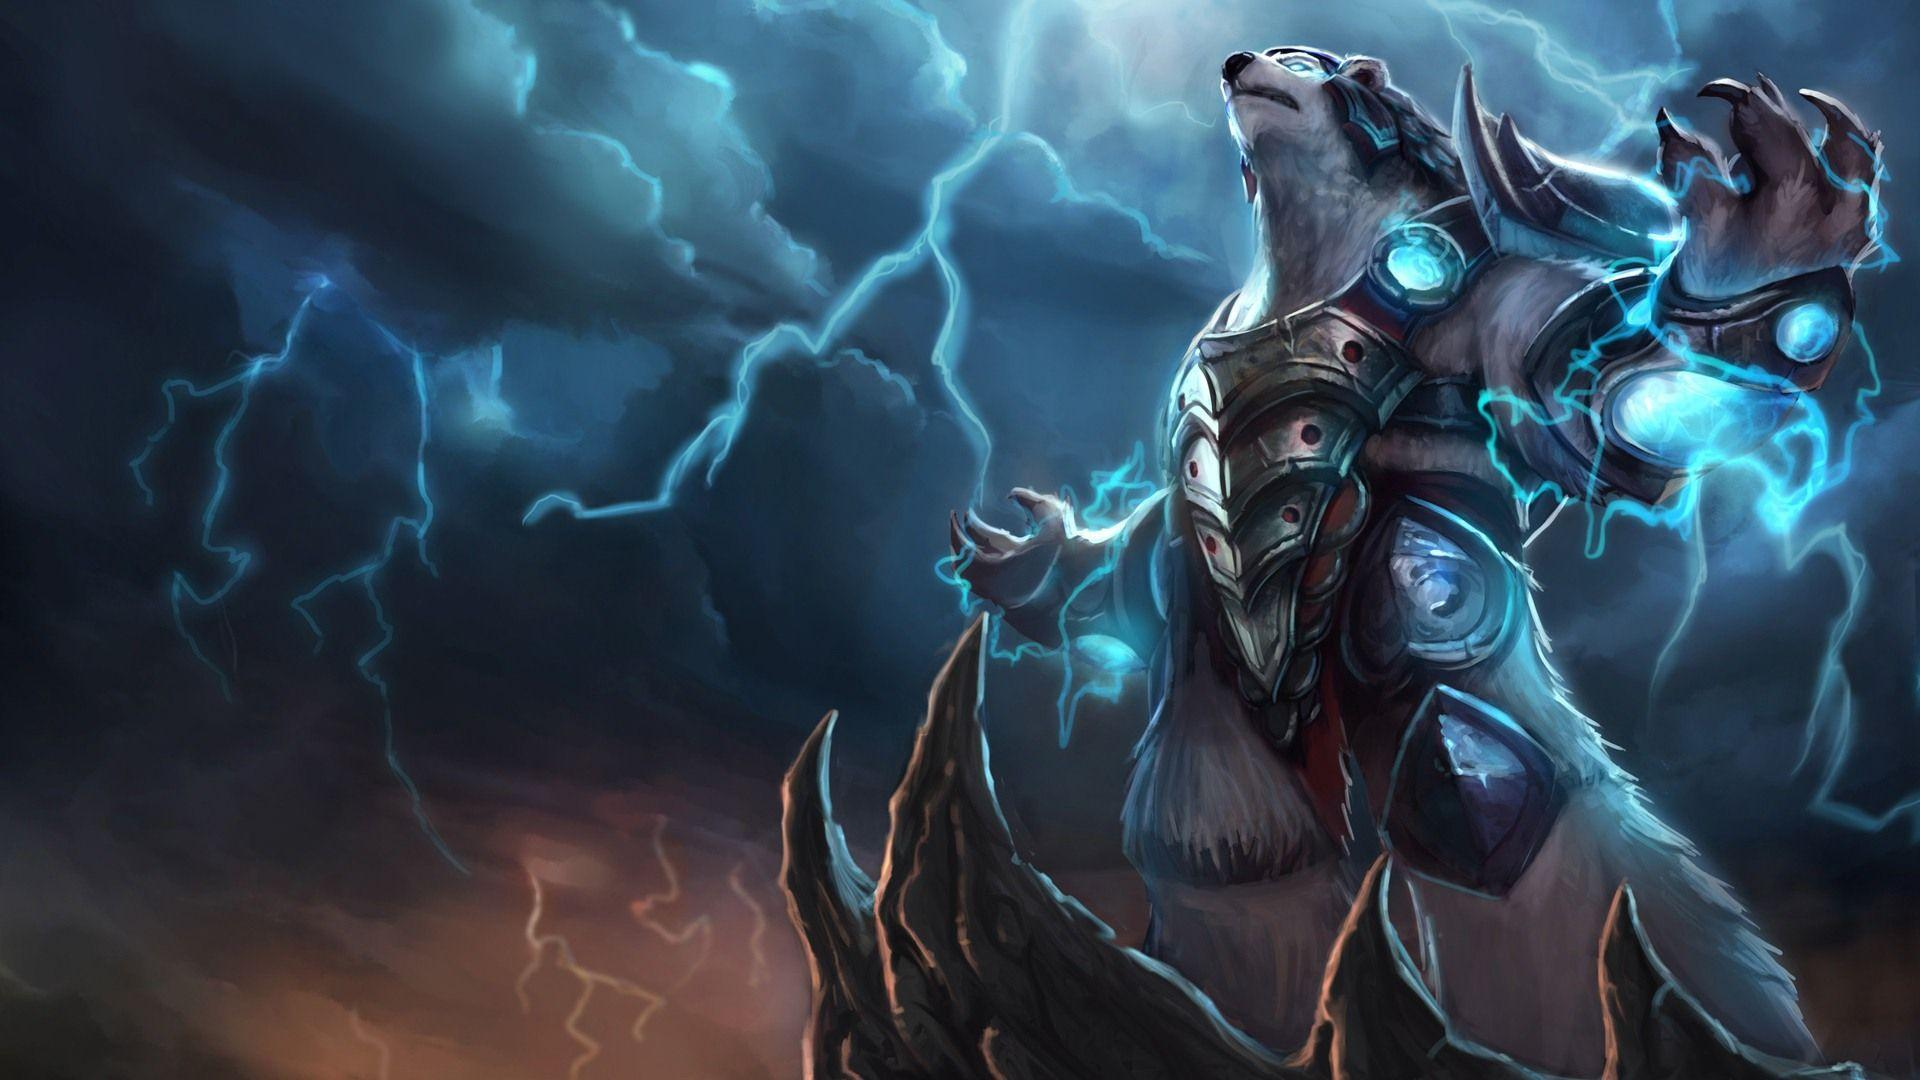 League of Legends game HD wallpapers #4 - 1920x1080 Wallpaper .